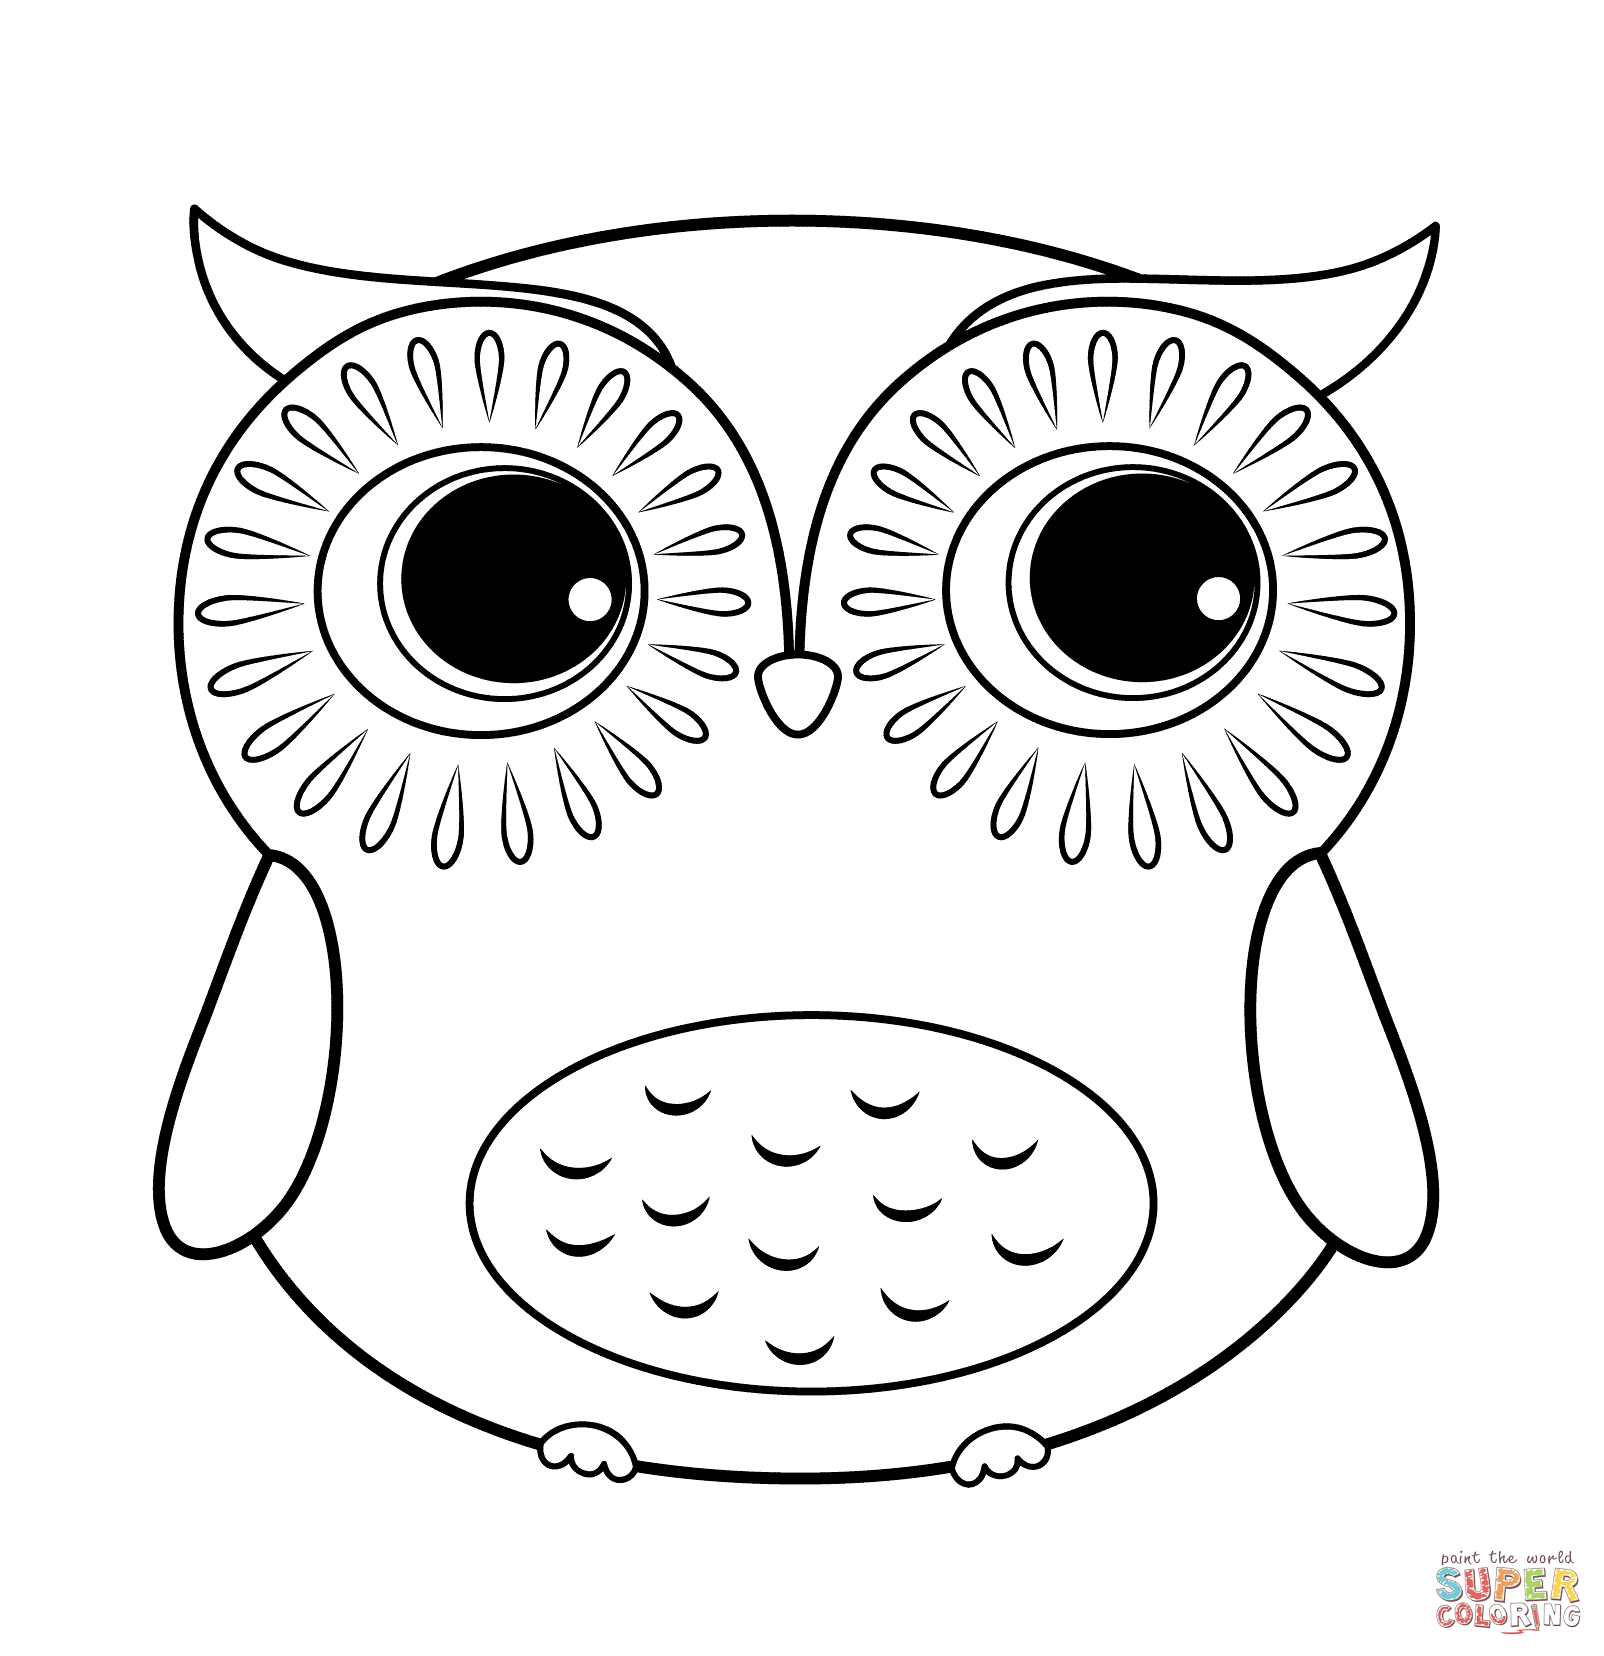 Cartoon Owl Coloring Page | Free Printable Coloring Pages